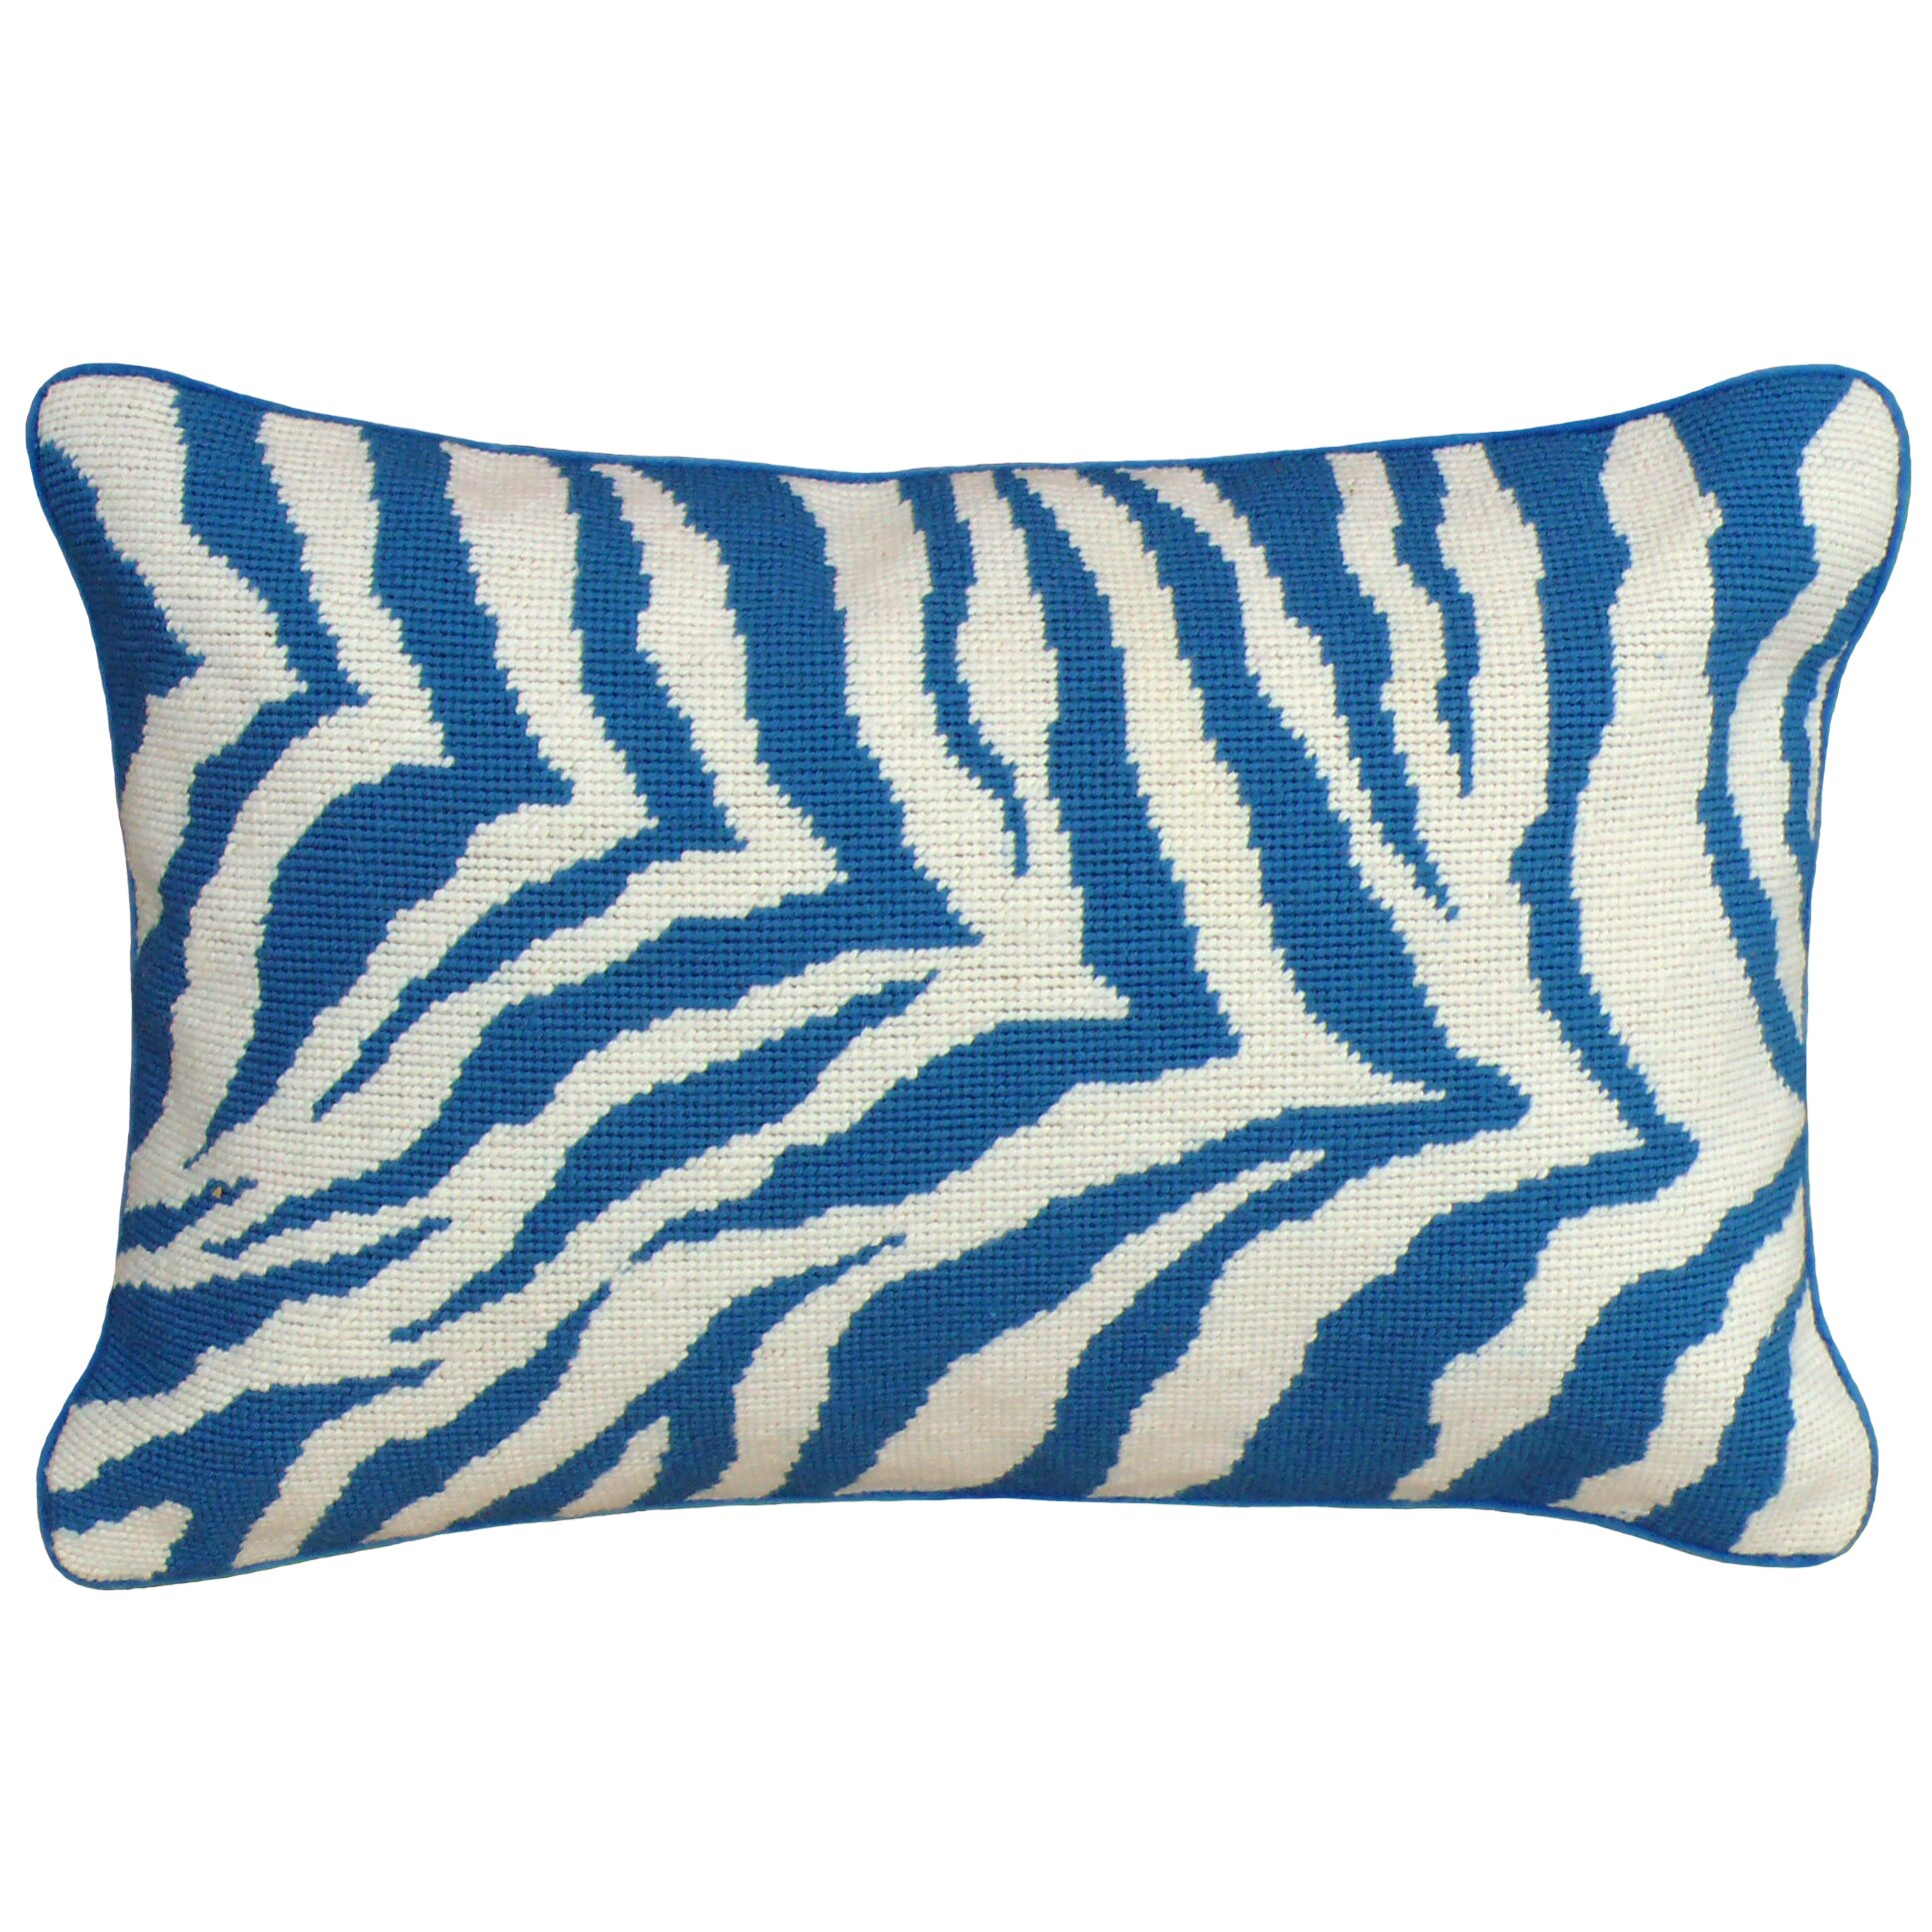 123 Creations Zebra Needlepoint Wool Lumbar Pillow Wayfair